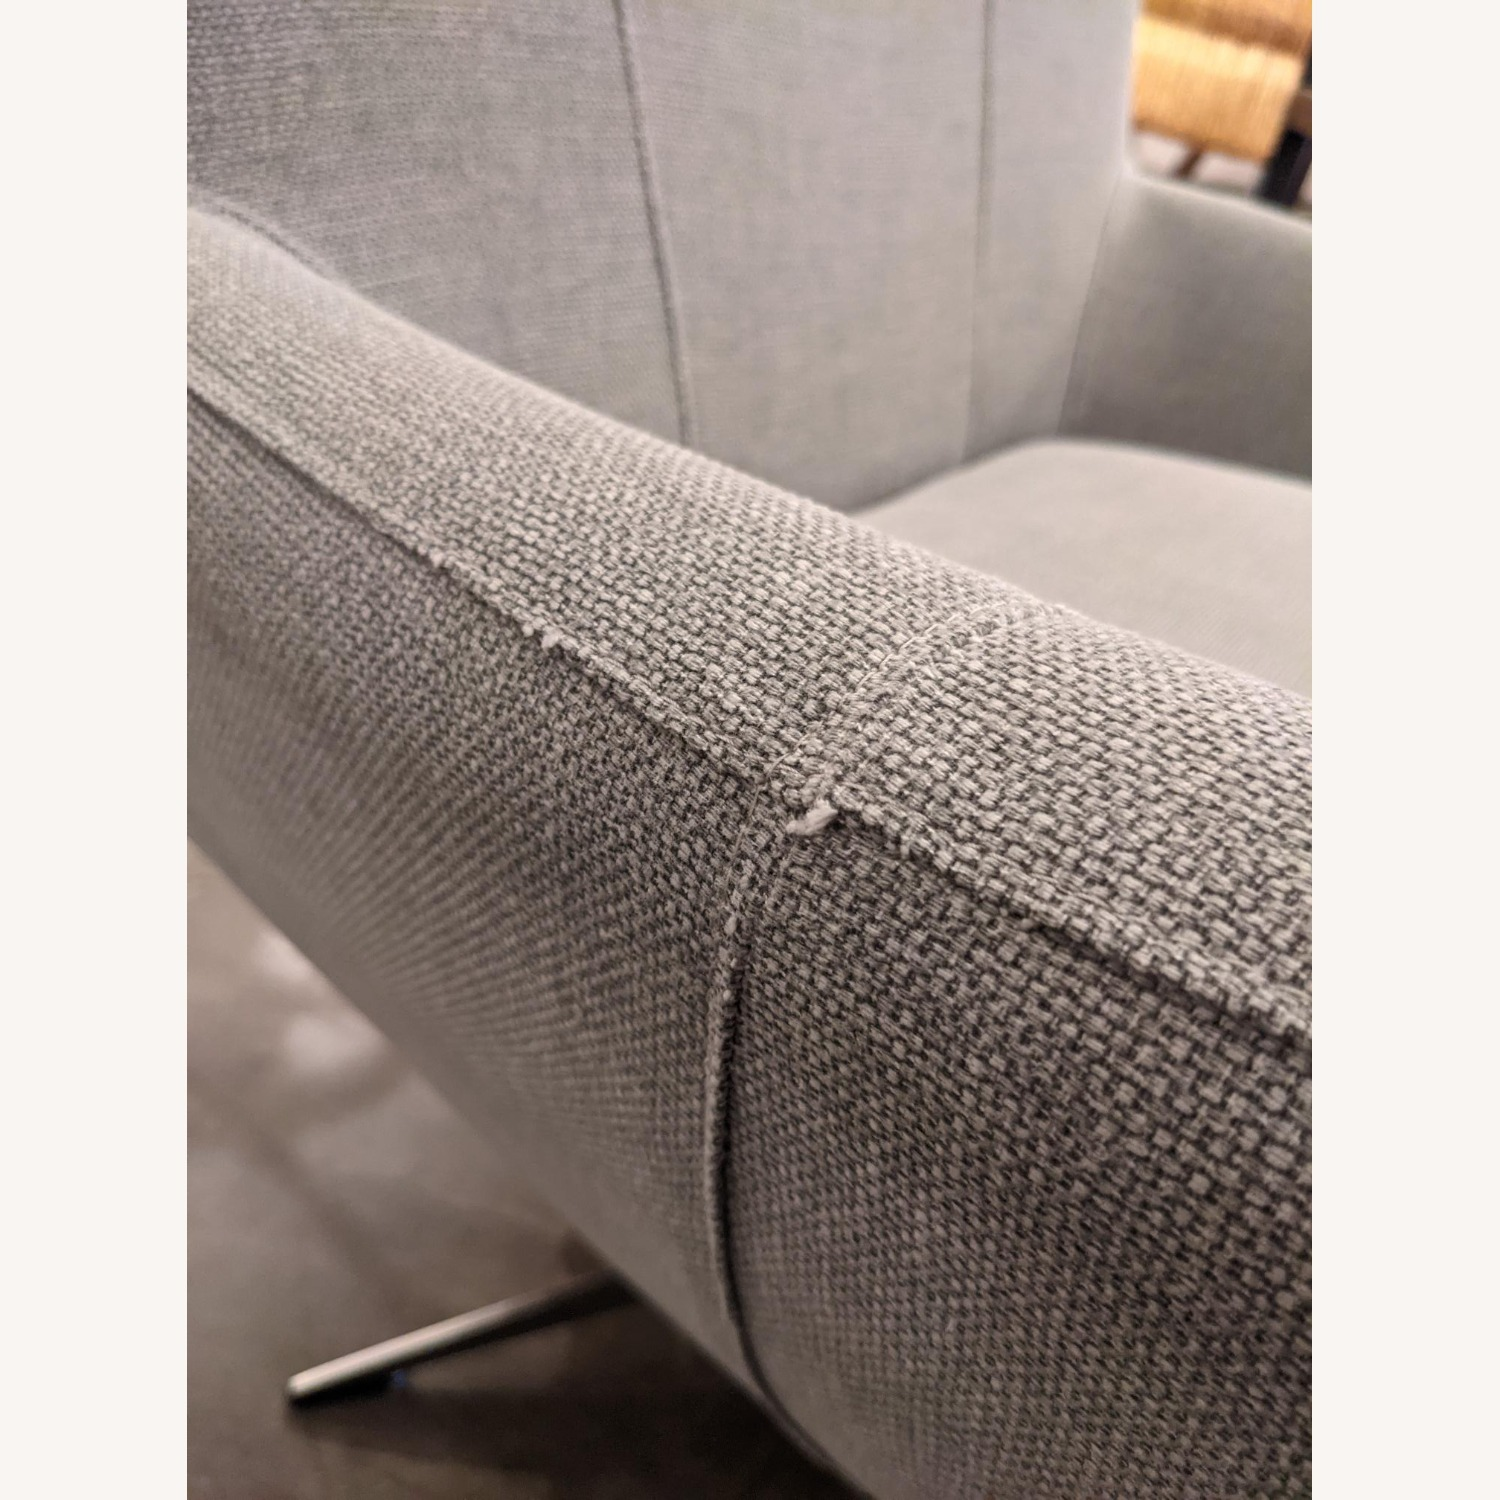 Pottery Barn Wells Tight Back Petite Armchair - image-4